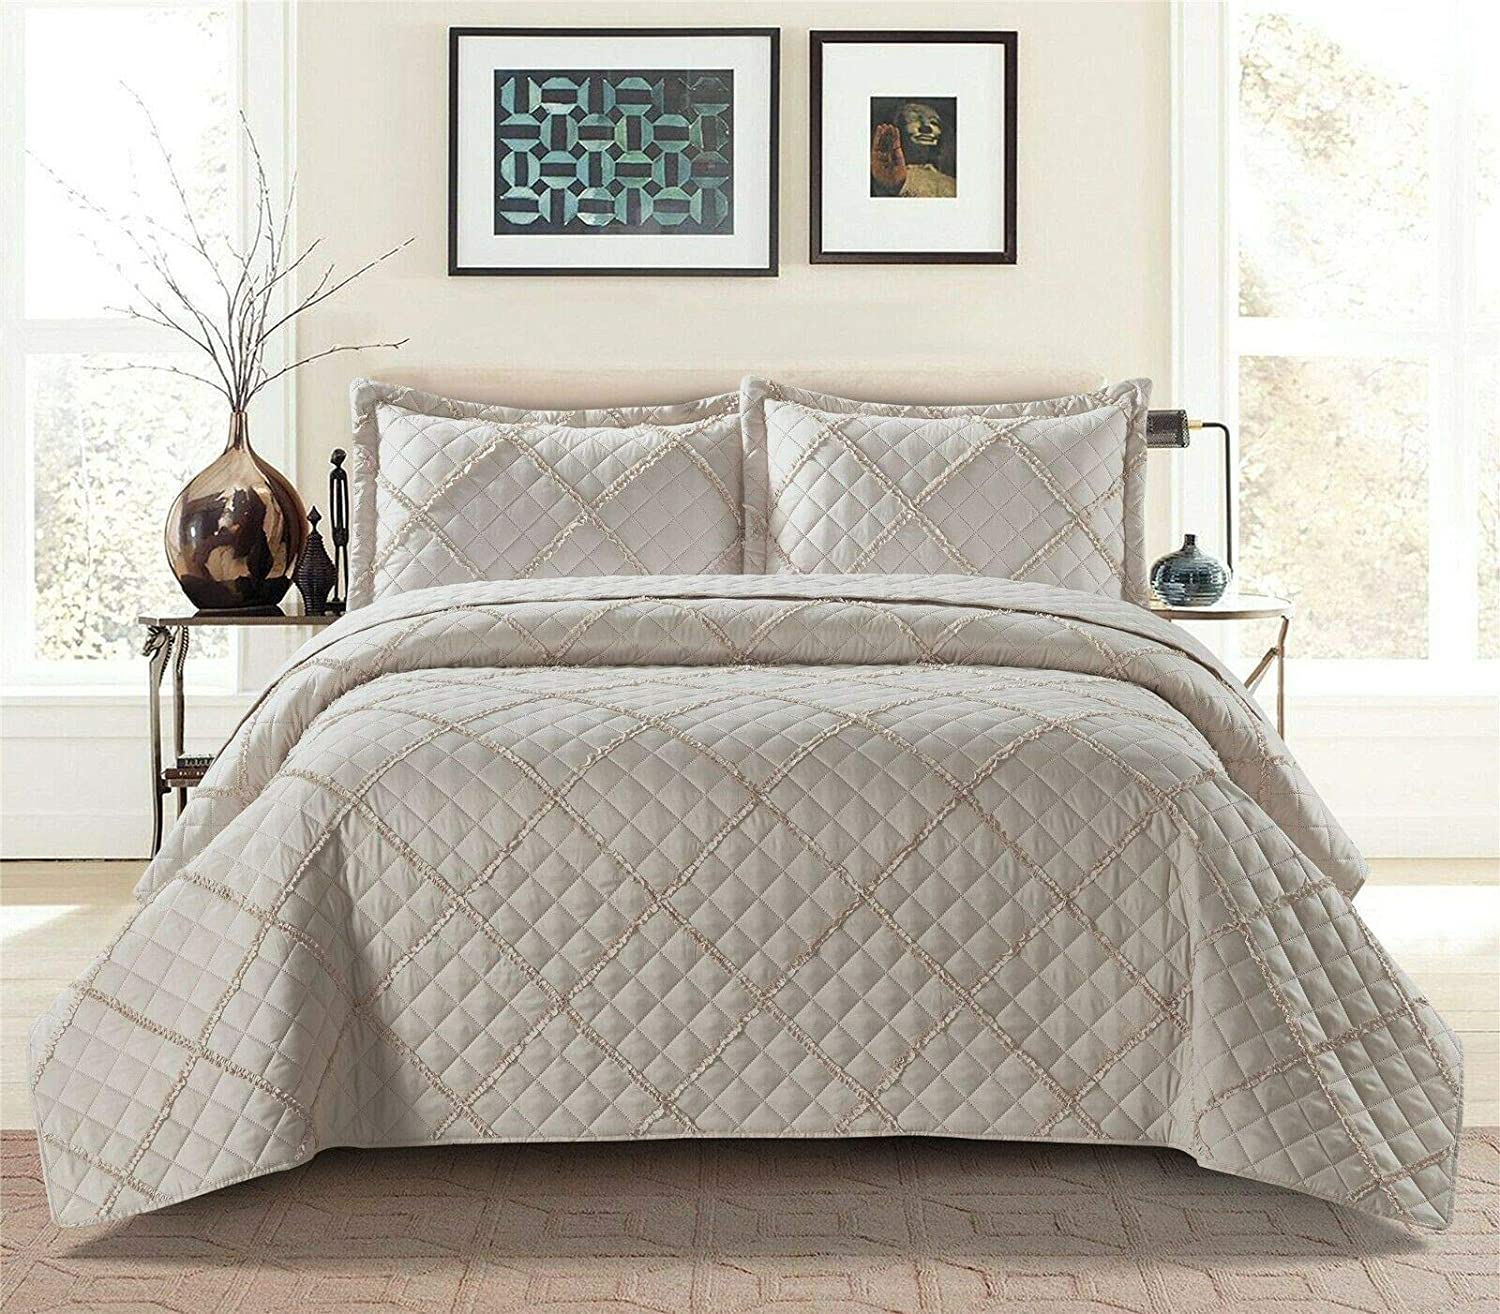 Prime Linens 3Pcs RAFFLE Bedspread Quilted Embossed Bed Throw and 2 pillow case In White, Double